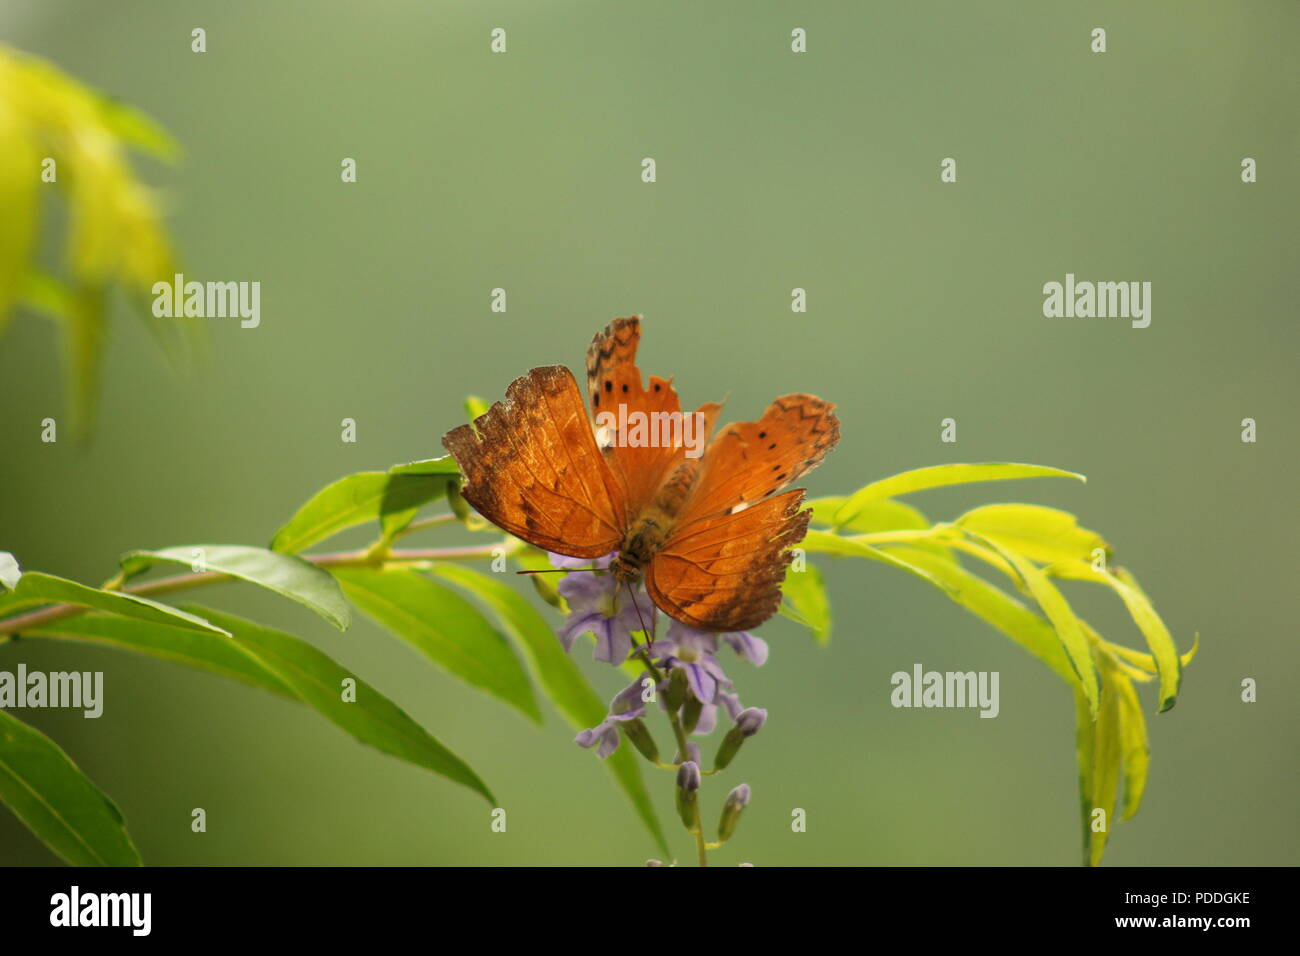 Butterflies are insects in the macrolepidopteran clade Rhopalocera from the order Lepidoptera, which also includes moths. - Stock Image